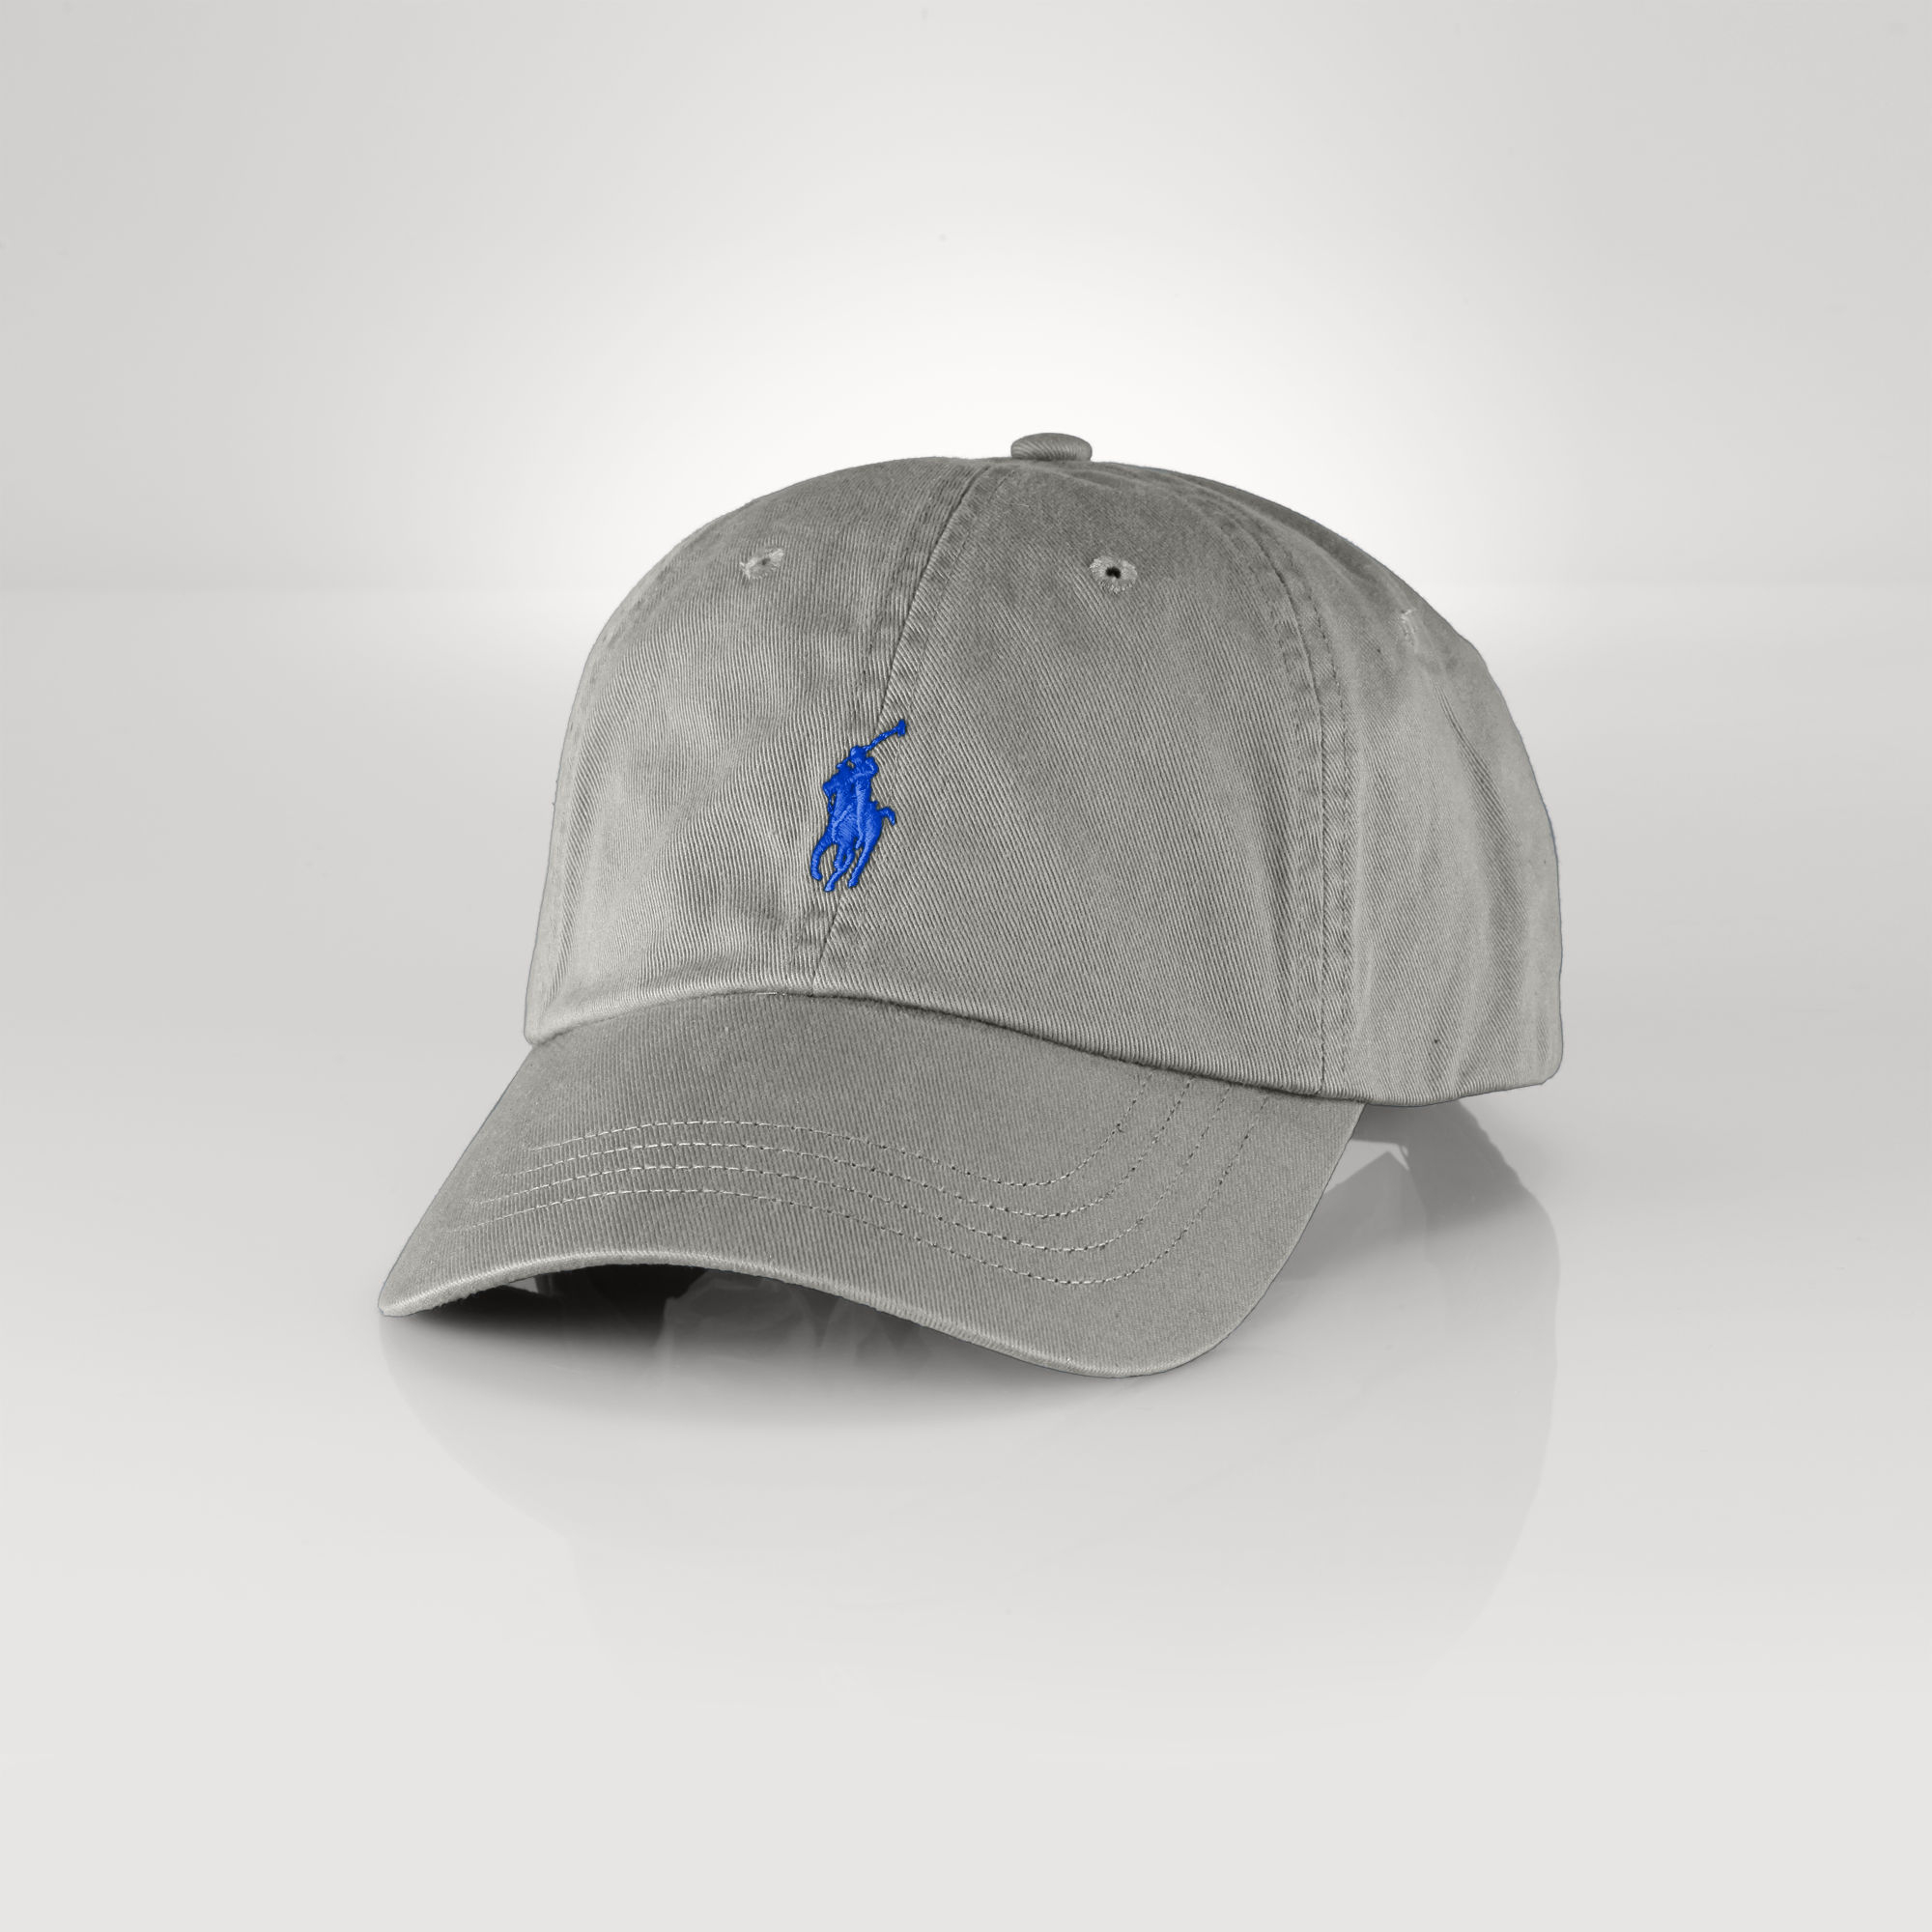 obmenvisitami.tk provides polo hat items from China top selected Ball Caps, Hats & Caps, Hats, Scarves & Gloves, Fashion Accessories suppliers at wholesale prices with worldwide delivery. You can find polo, Ball Cap polo hat free shipping, polo baseball hat and view polo hat reviews to .